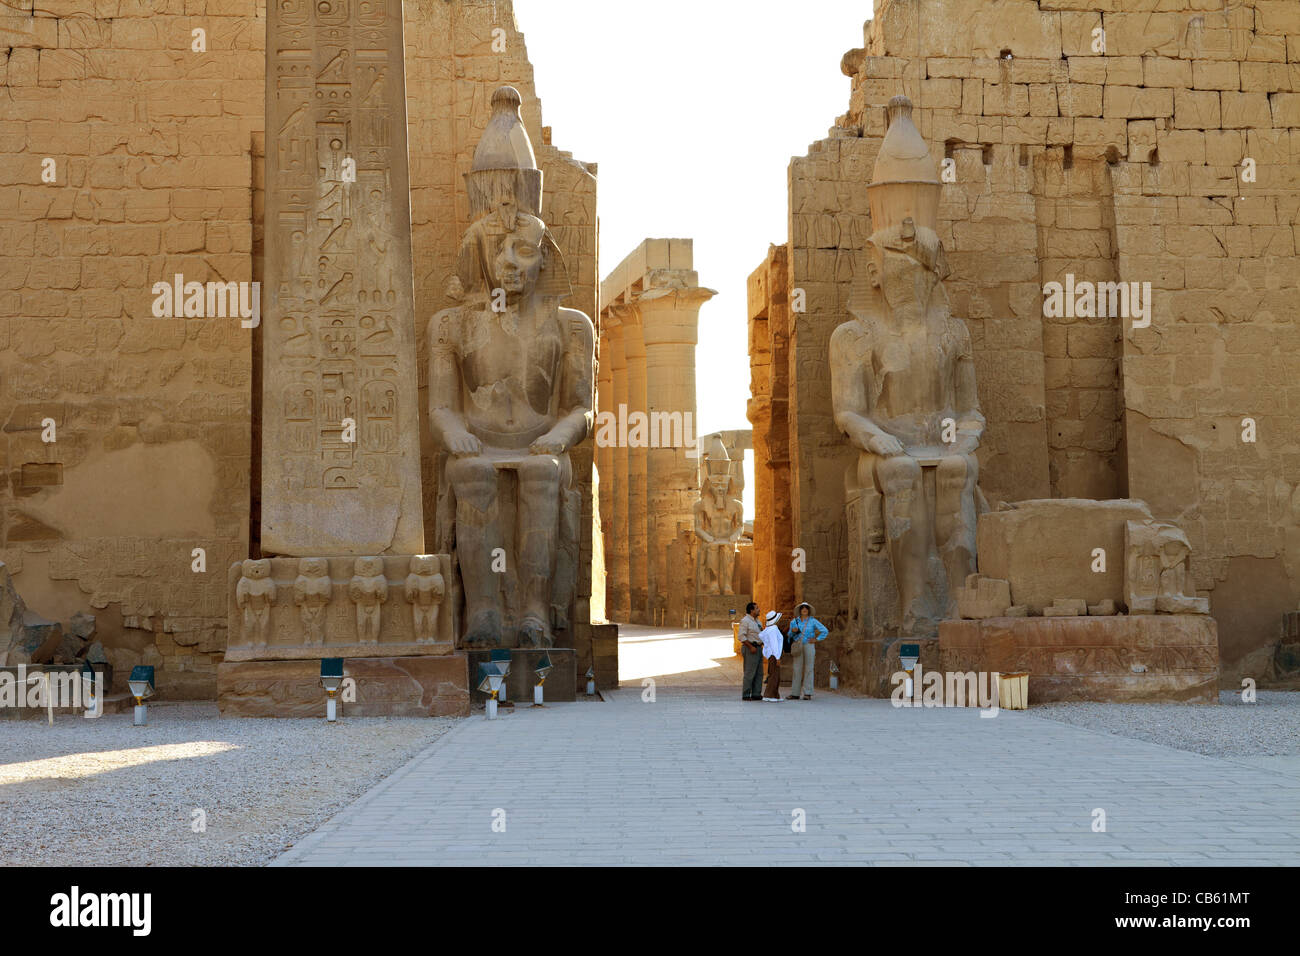 The entrance of Luxor Temple at dawn - Stock Image